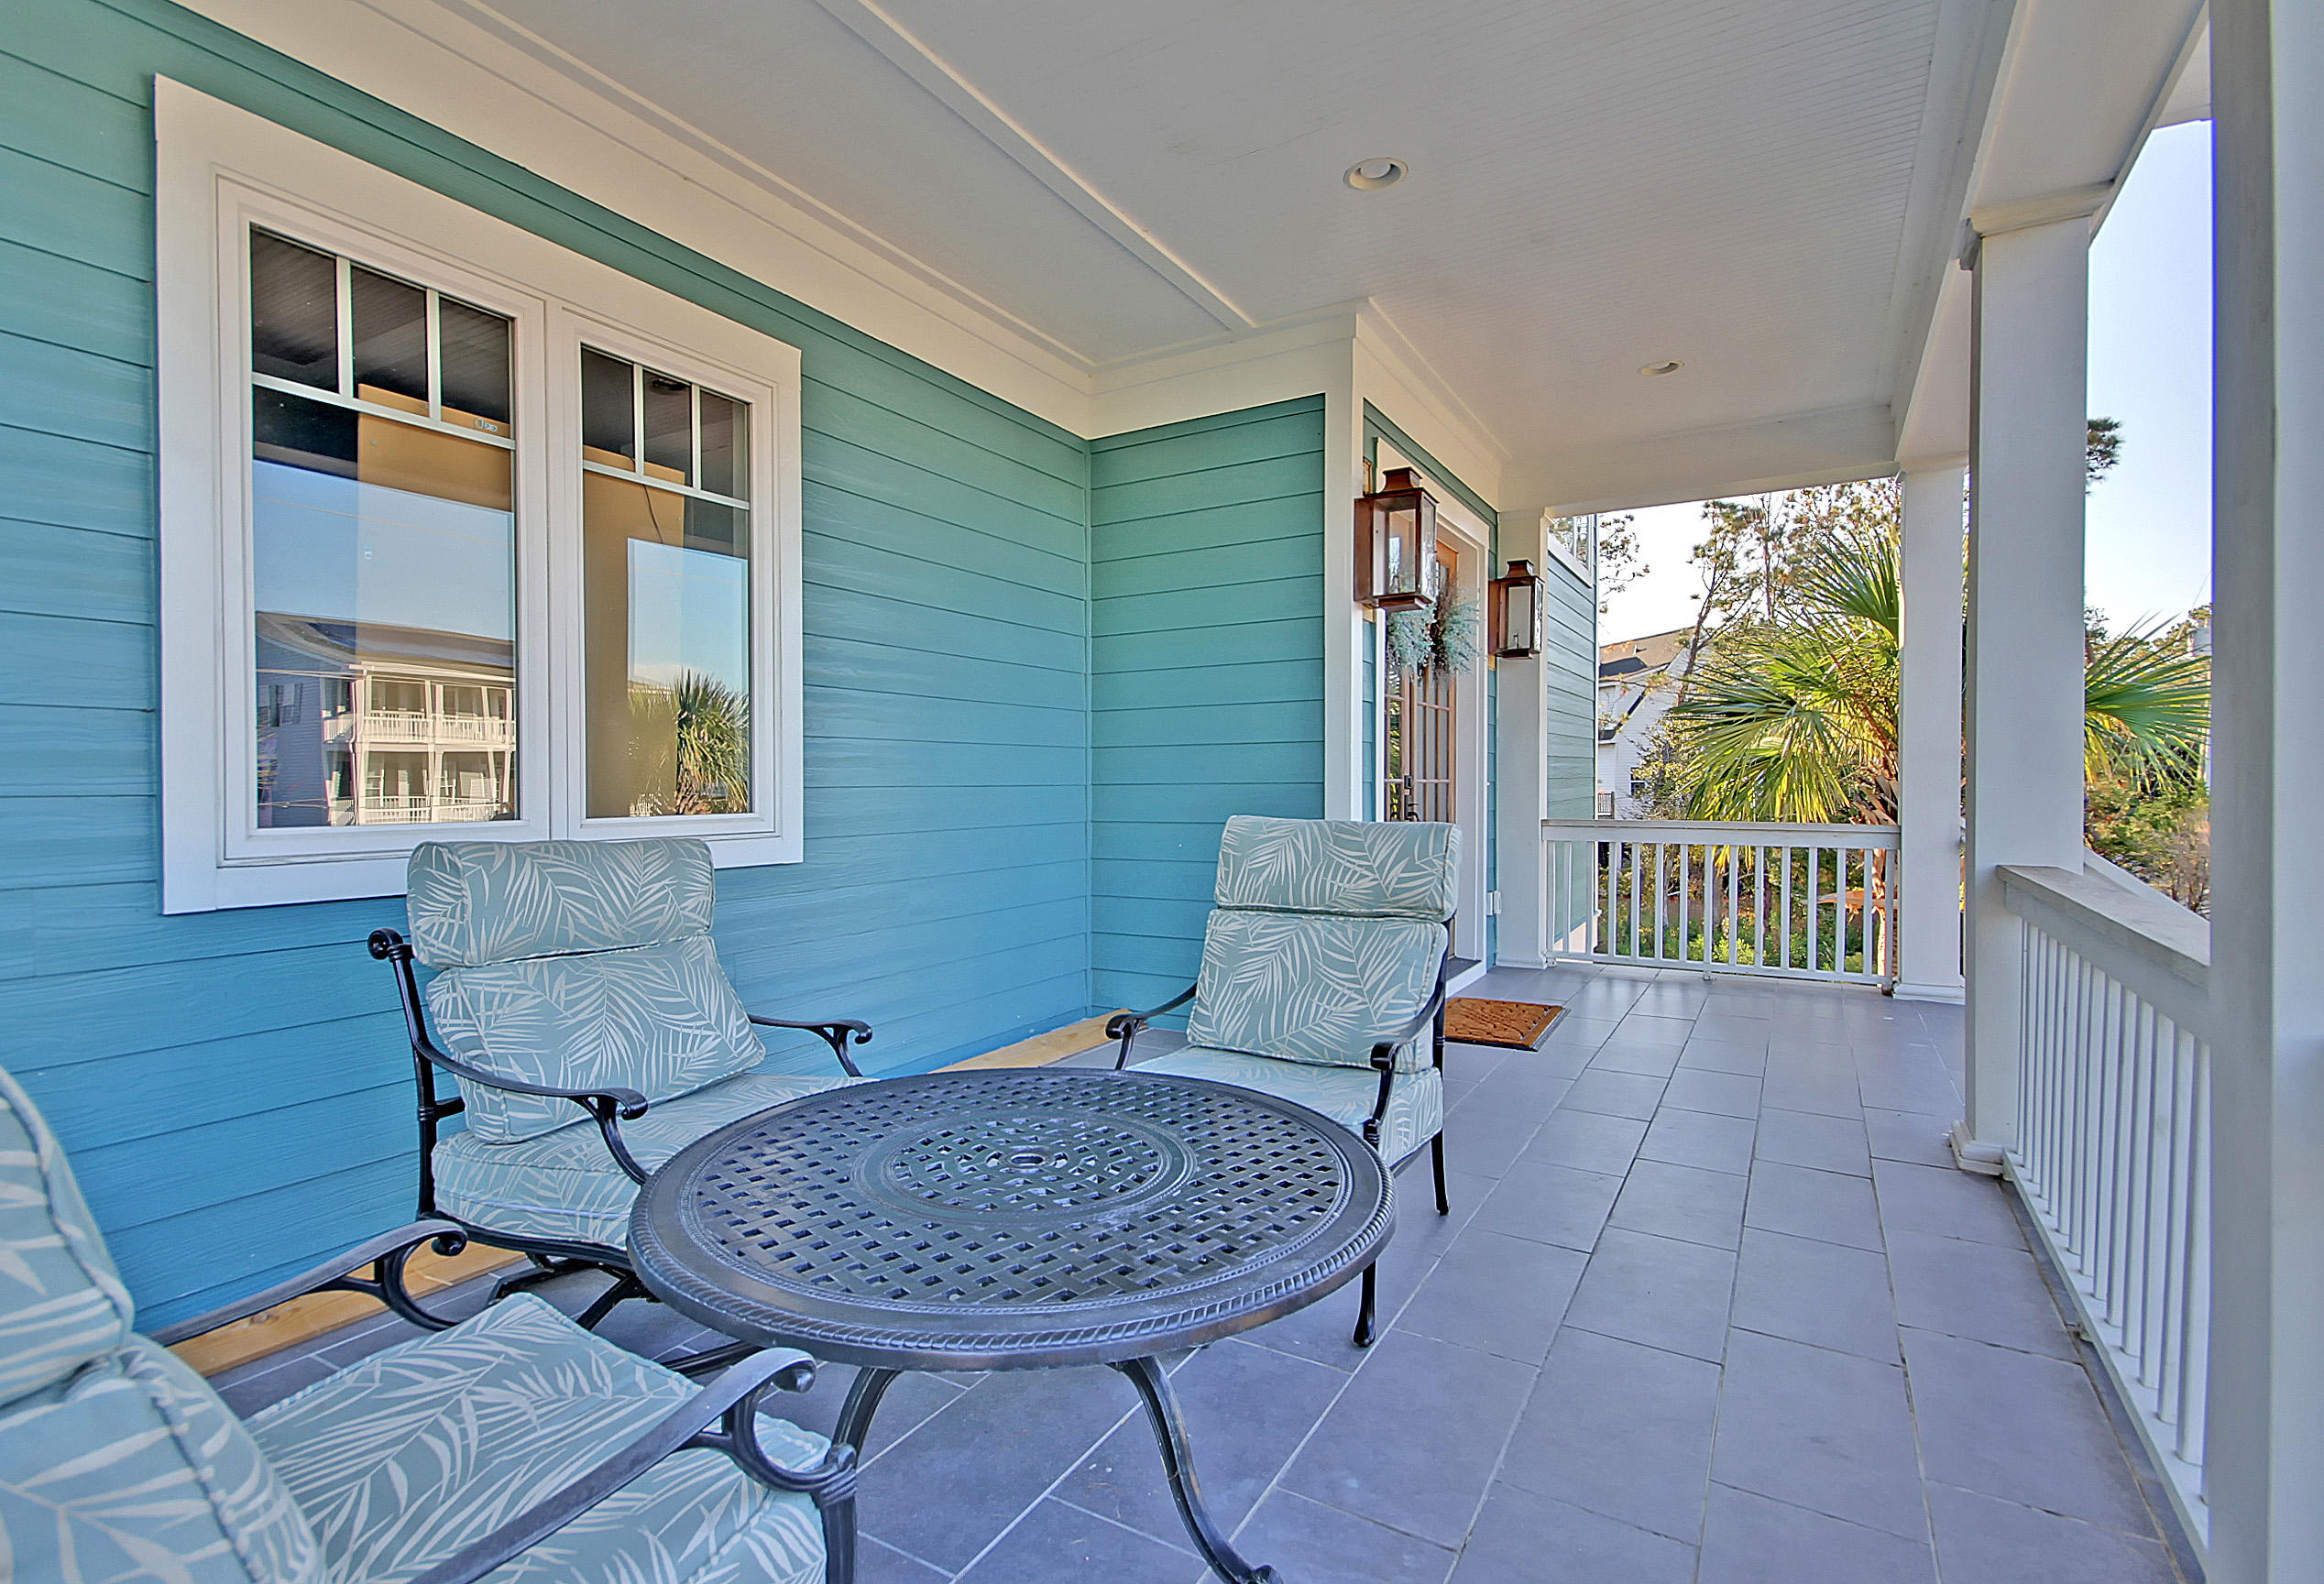 Photo of 575 Lynne Ave, Charleston, SC 29412